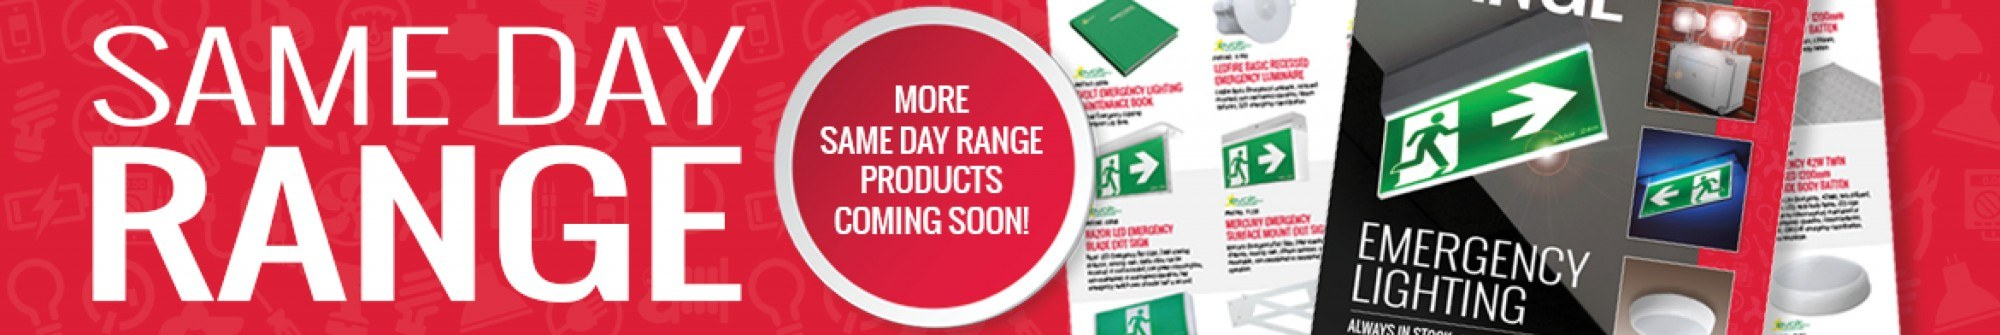 Same Day Range Banner